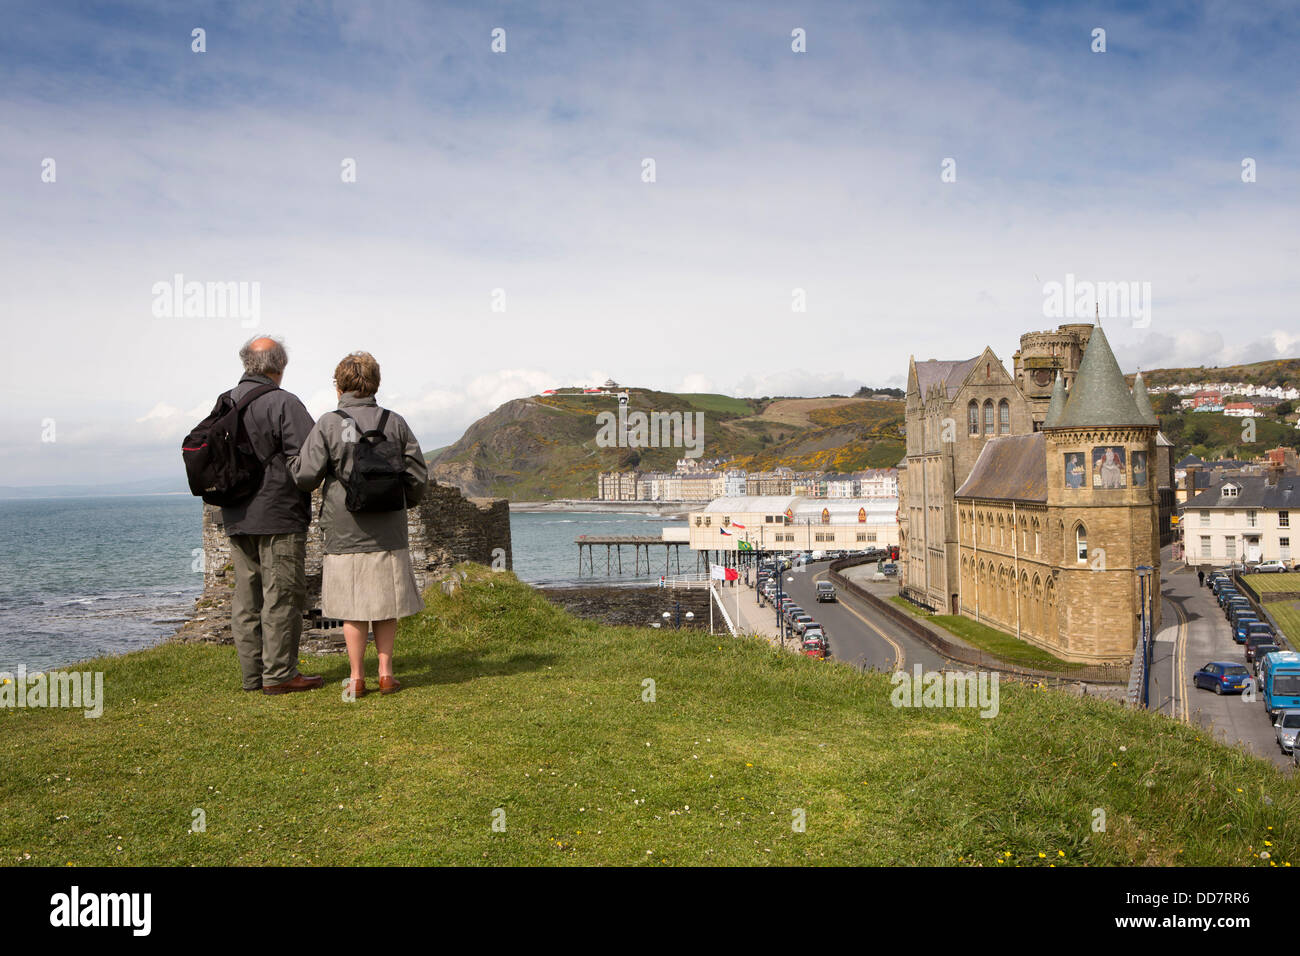 UK, Wales, Ceredigion, Aberystwyth, middle aged couple on Castle mound overlooking first University building - Stock Image